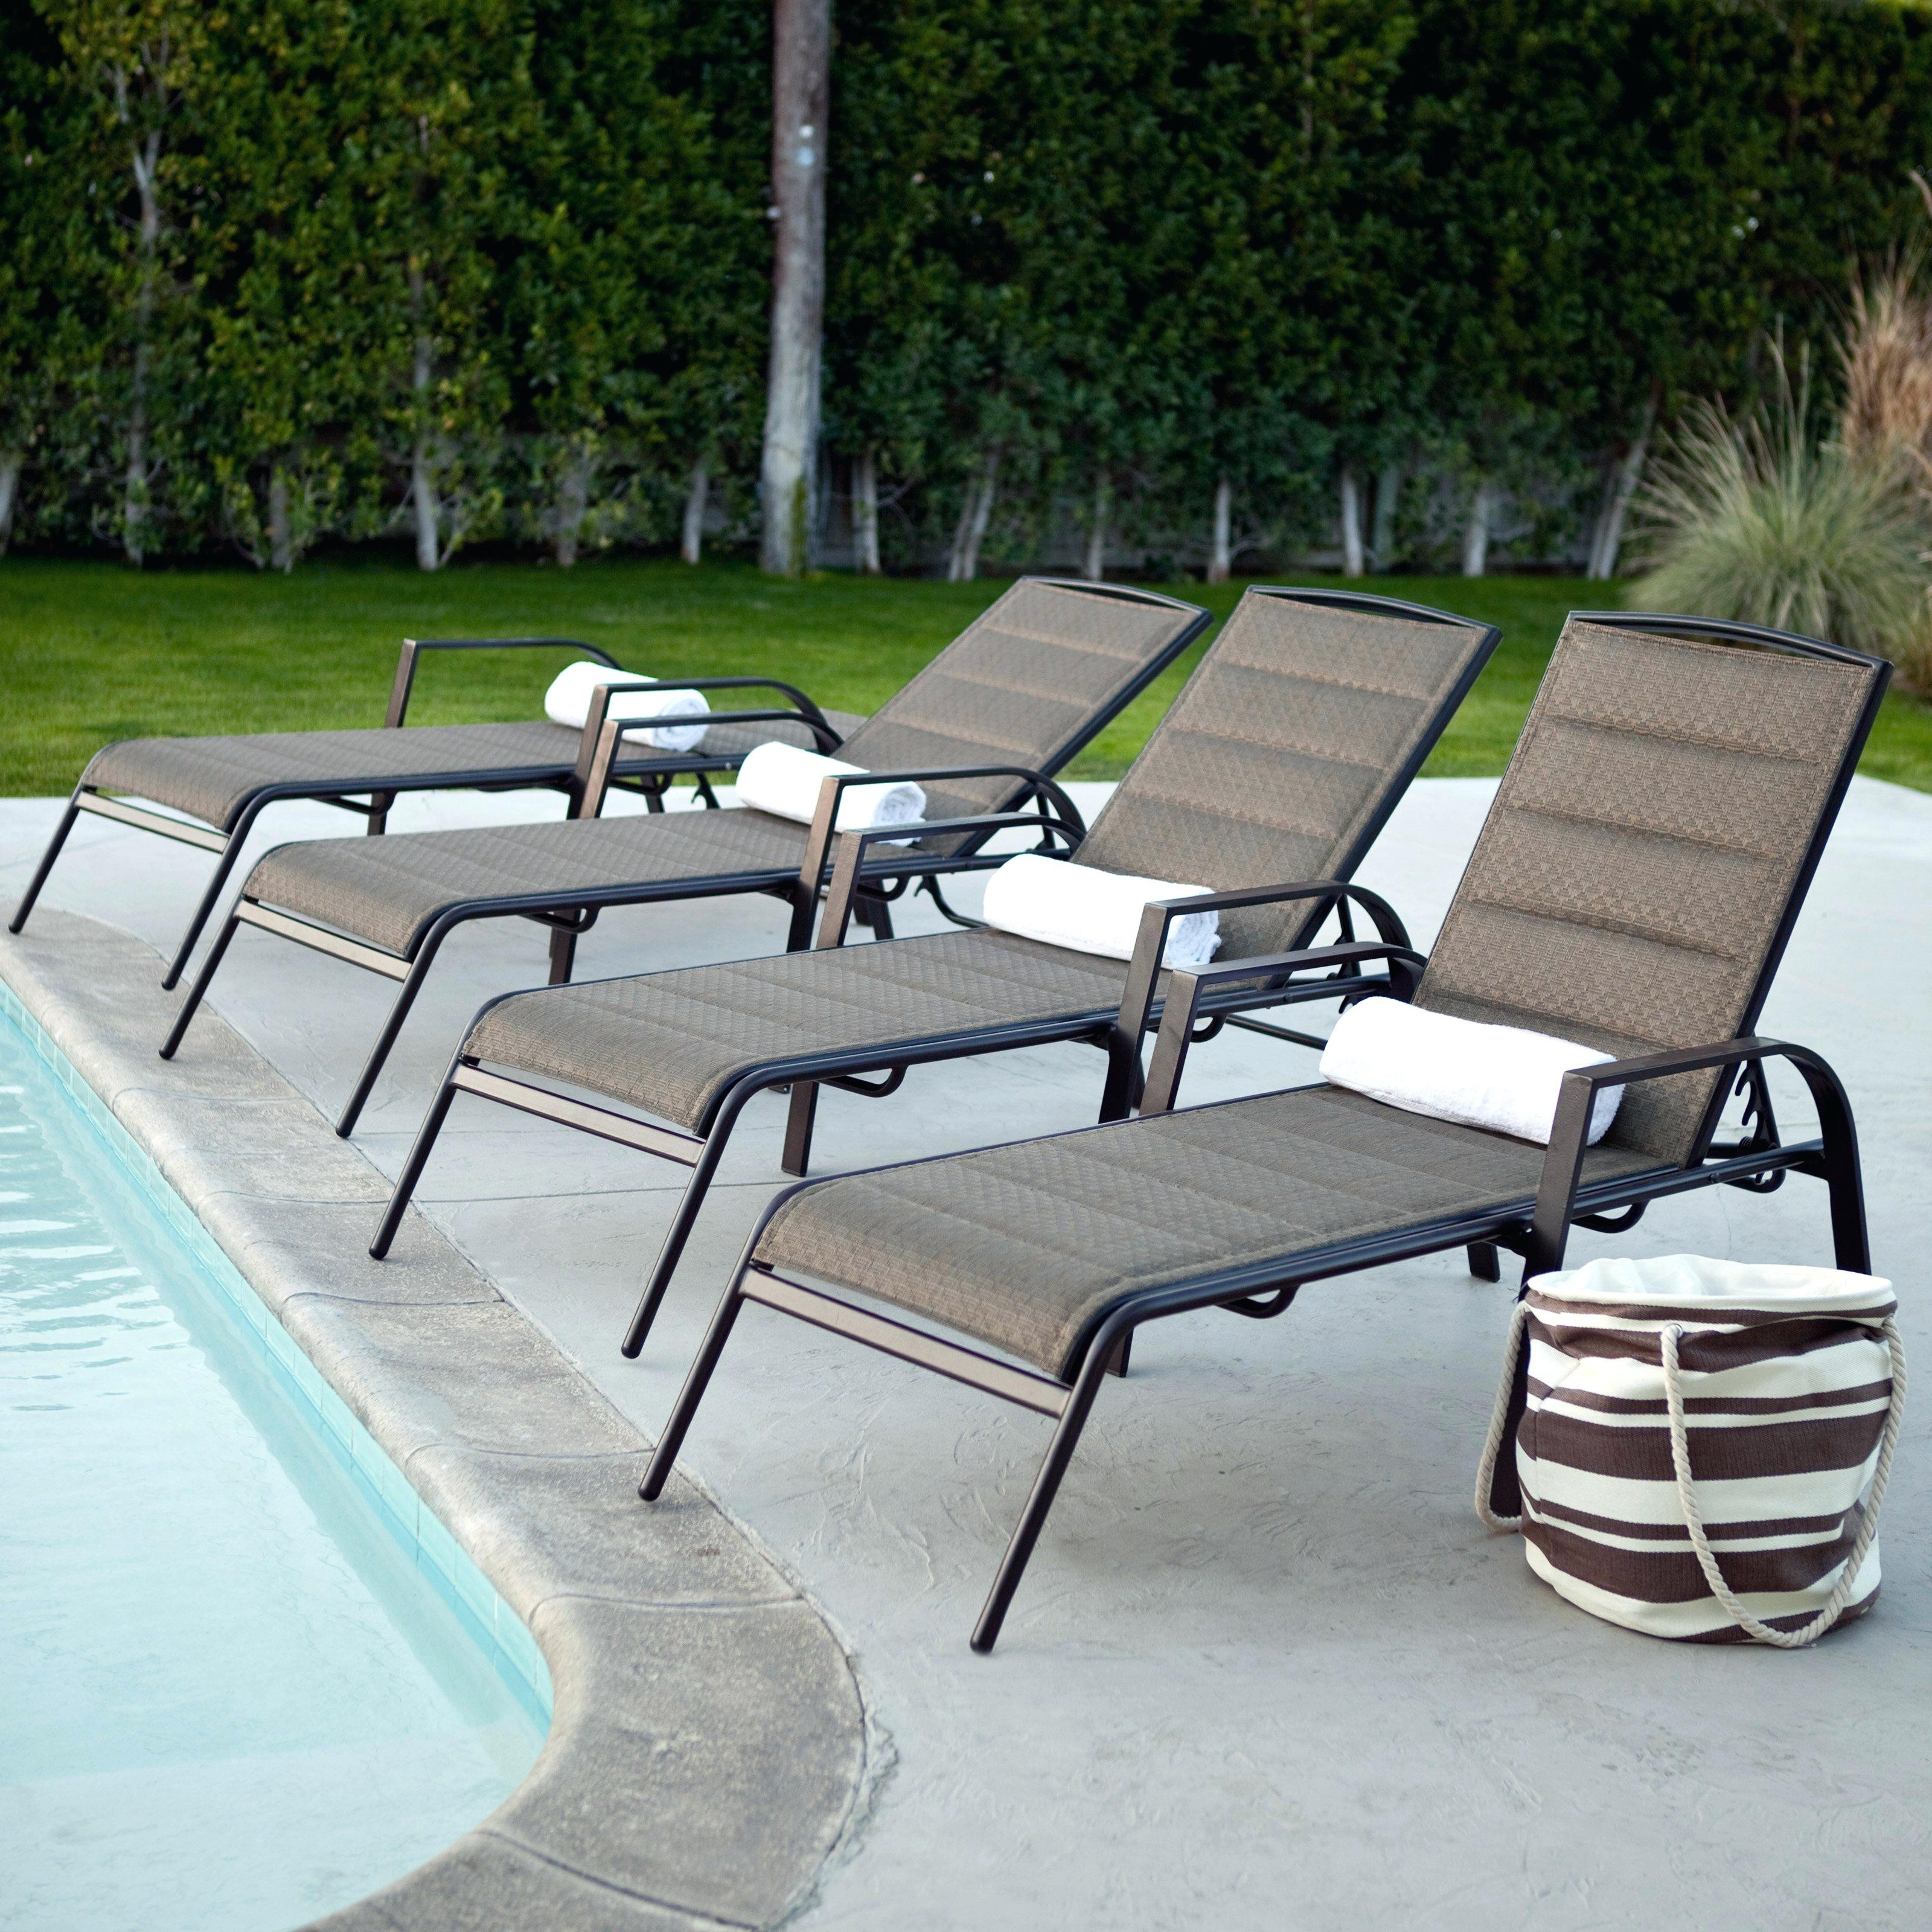 Latest Keter Pool Lounge Chairs • Lounge Chairs Ideas Intended For Keter Chaise Lounge Chairs (View 7 of 15)